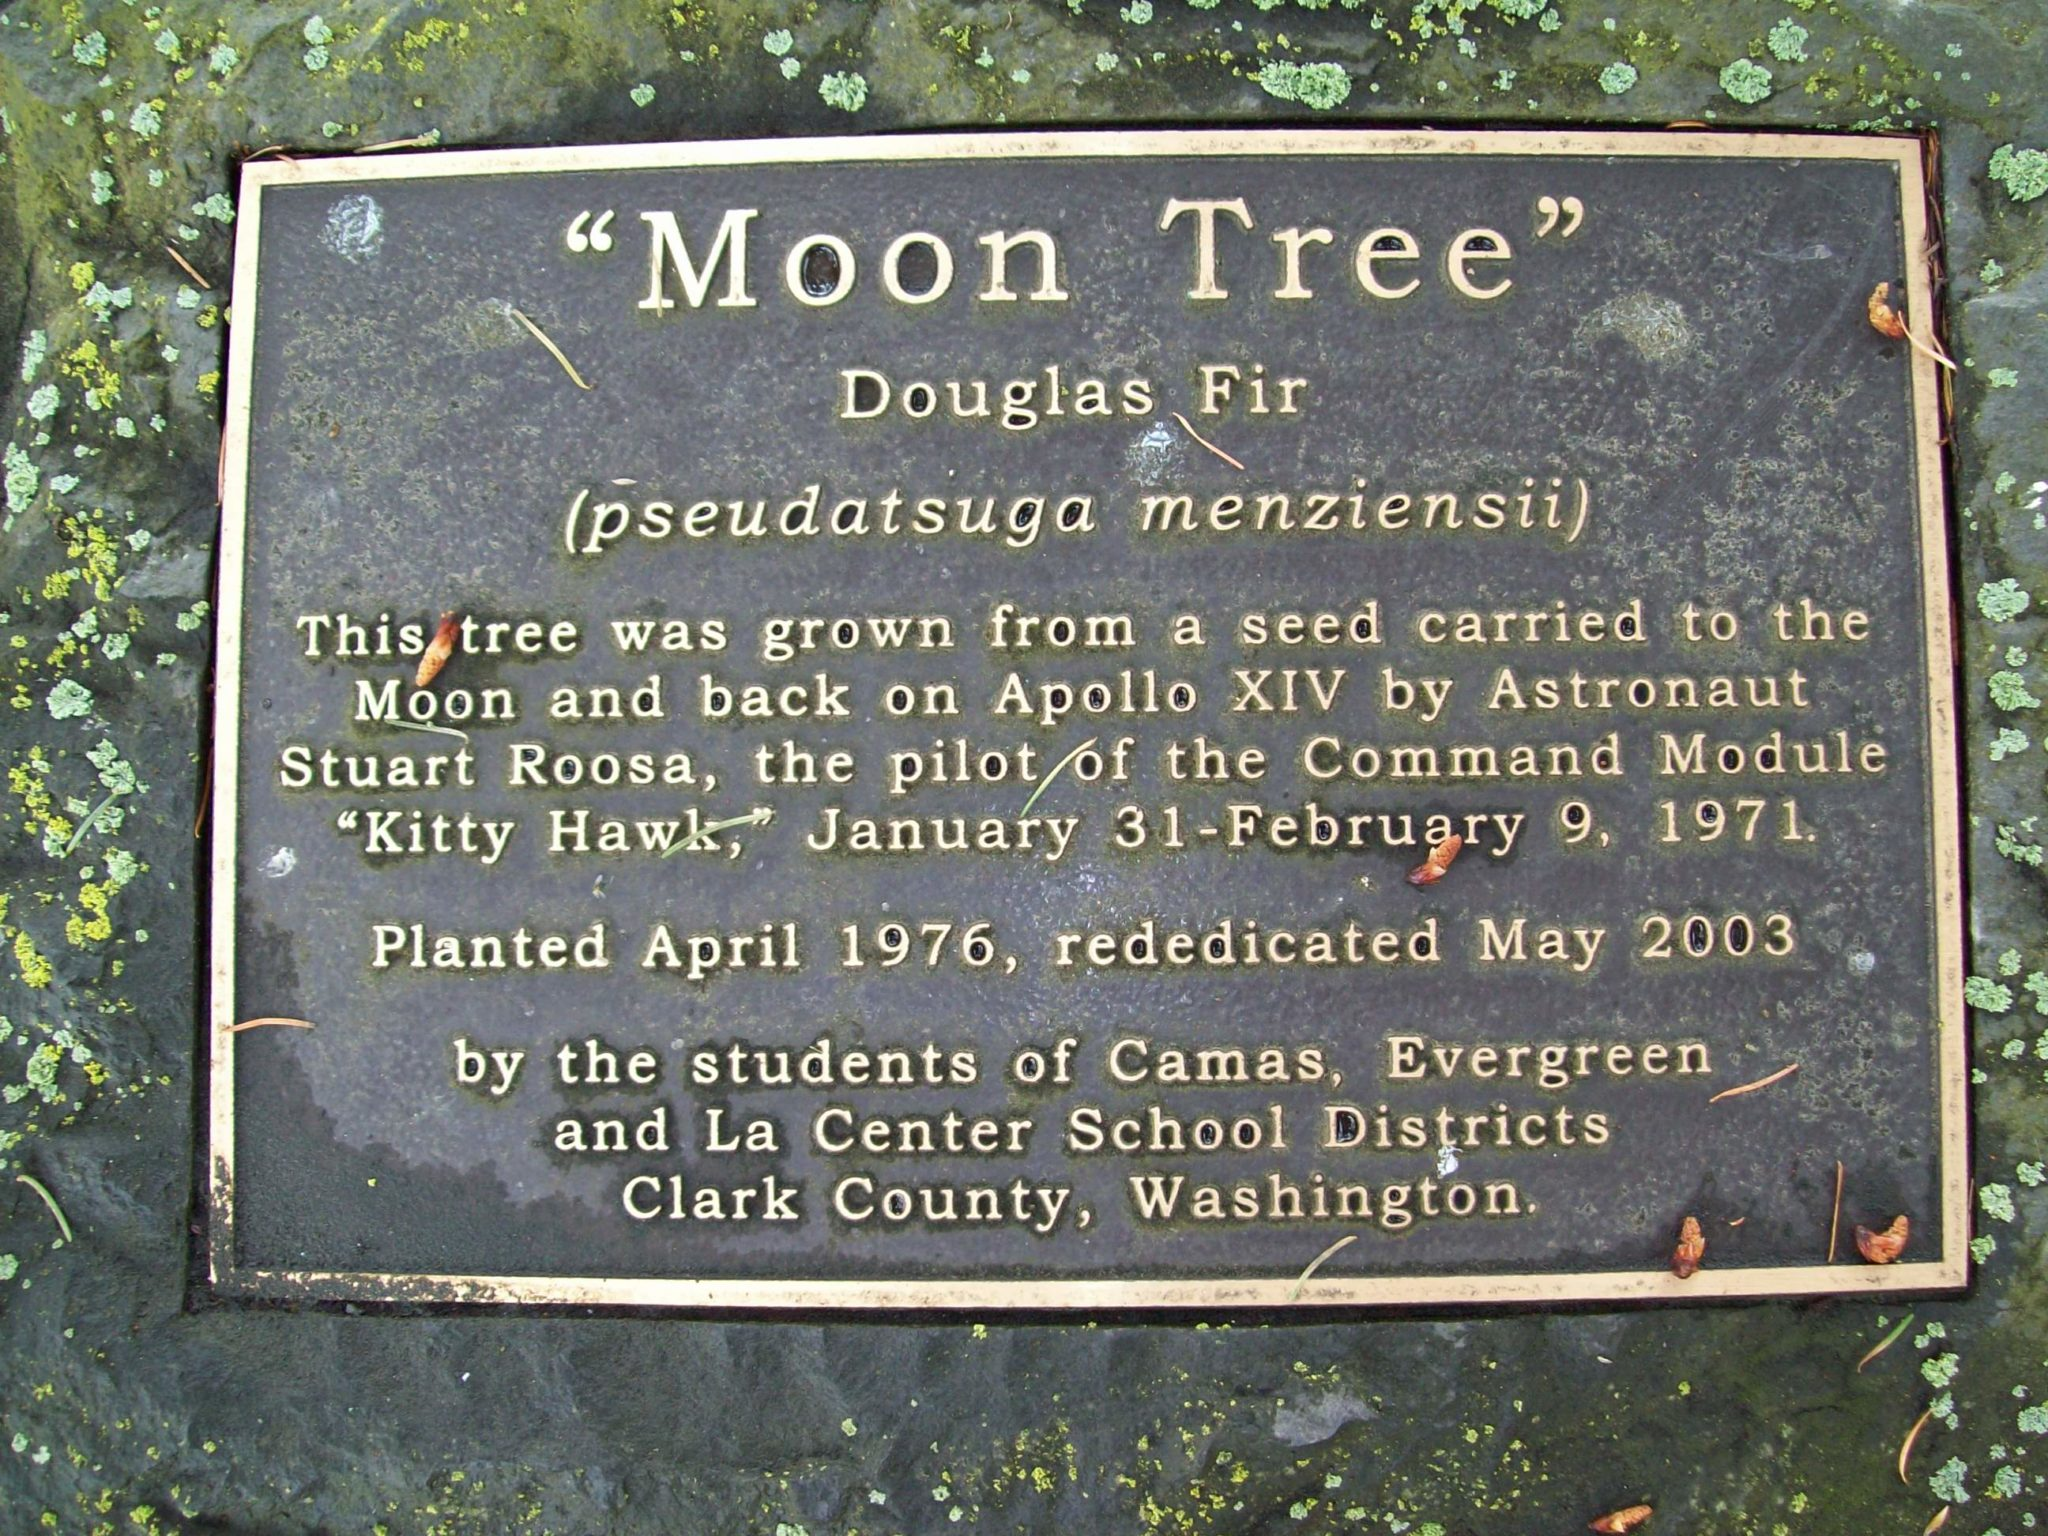 A badge usually provides information on the origin of these traveling trees.